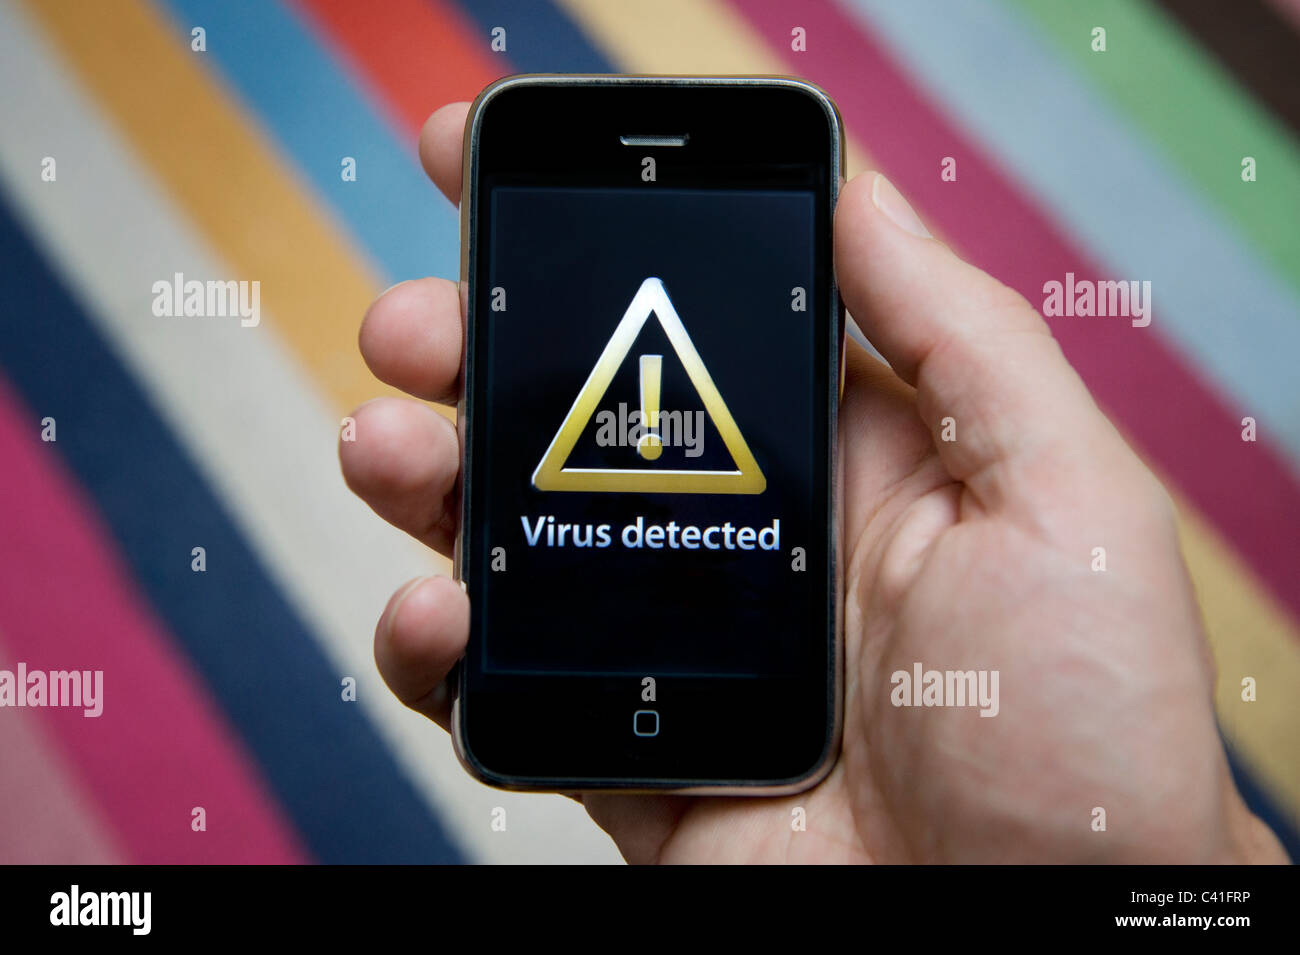 Close up of male hand holding an iPhone which is indicating the detection of a virus. (Editorial use only). - Stock Image